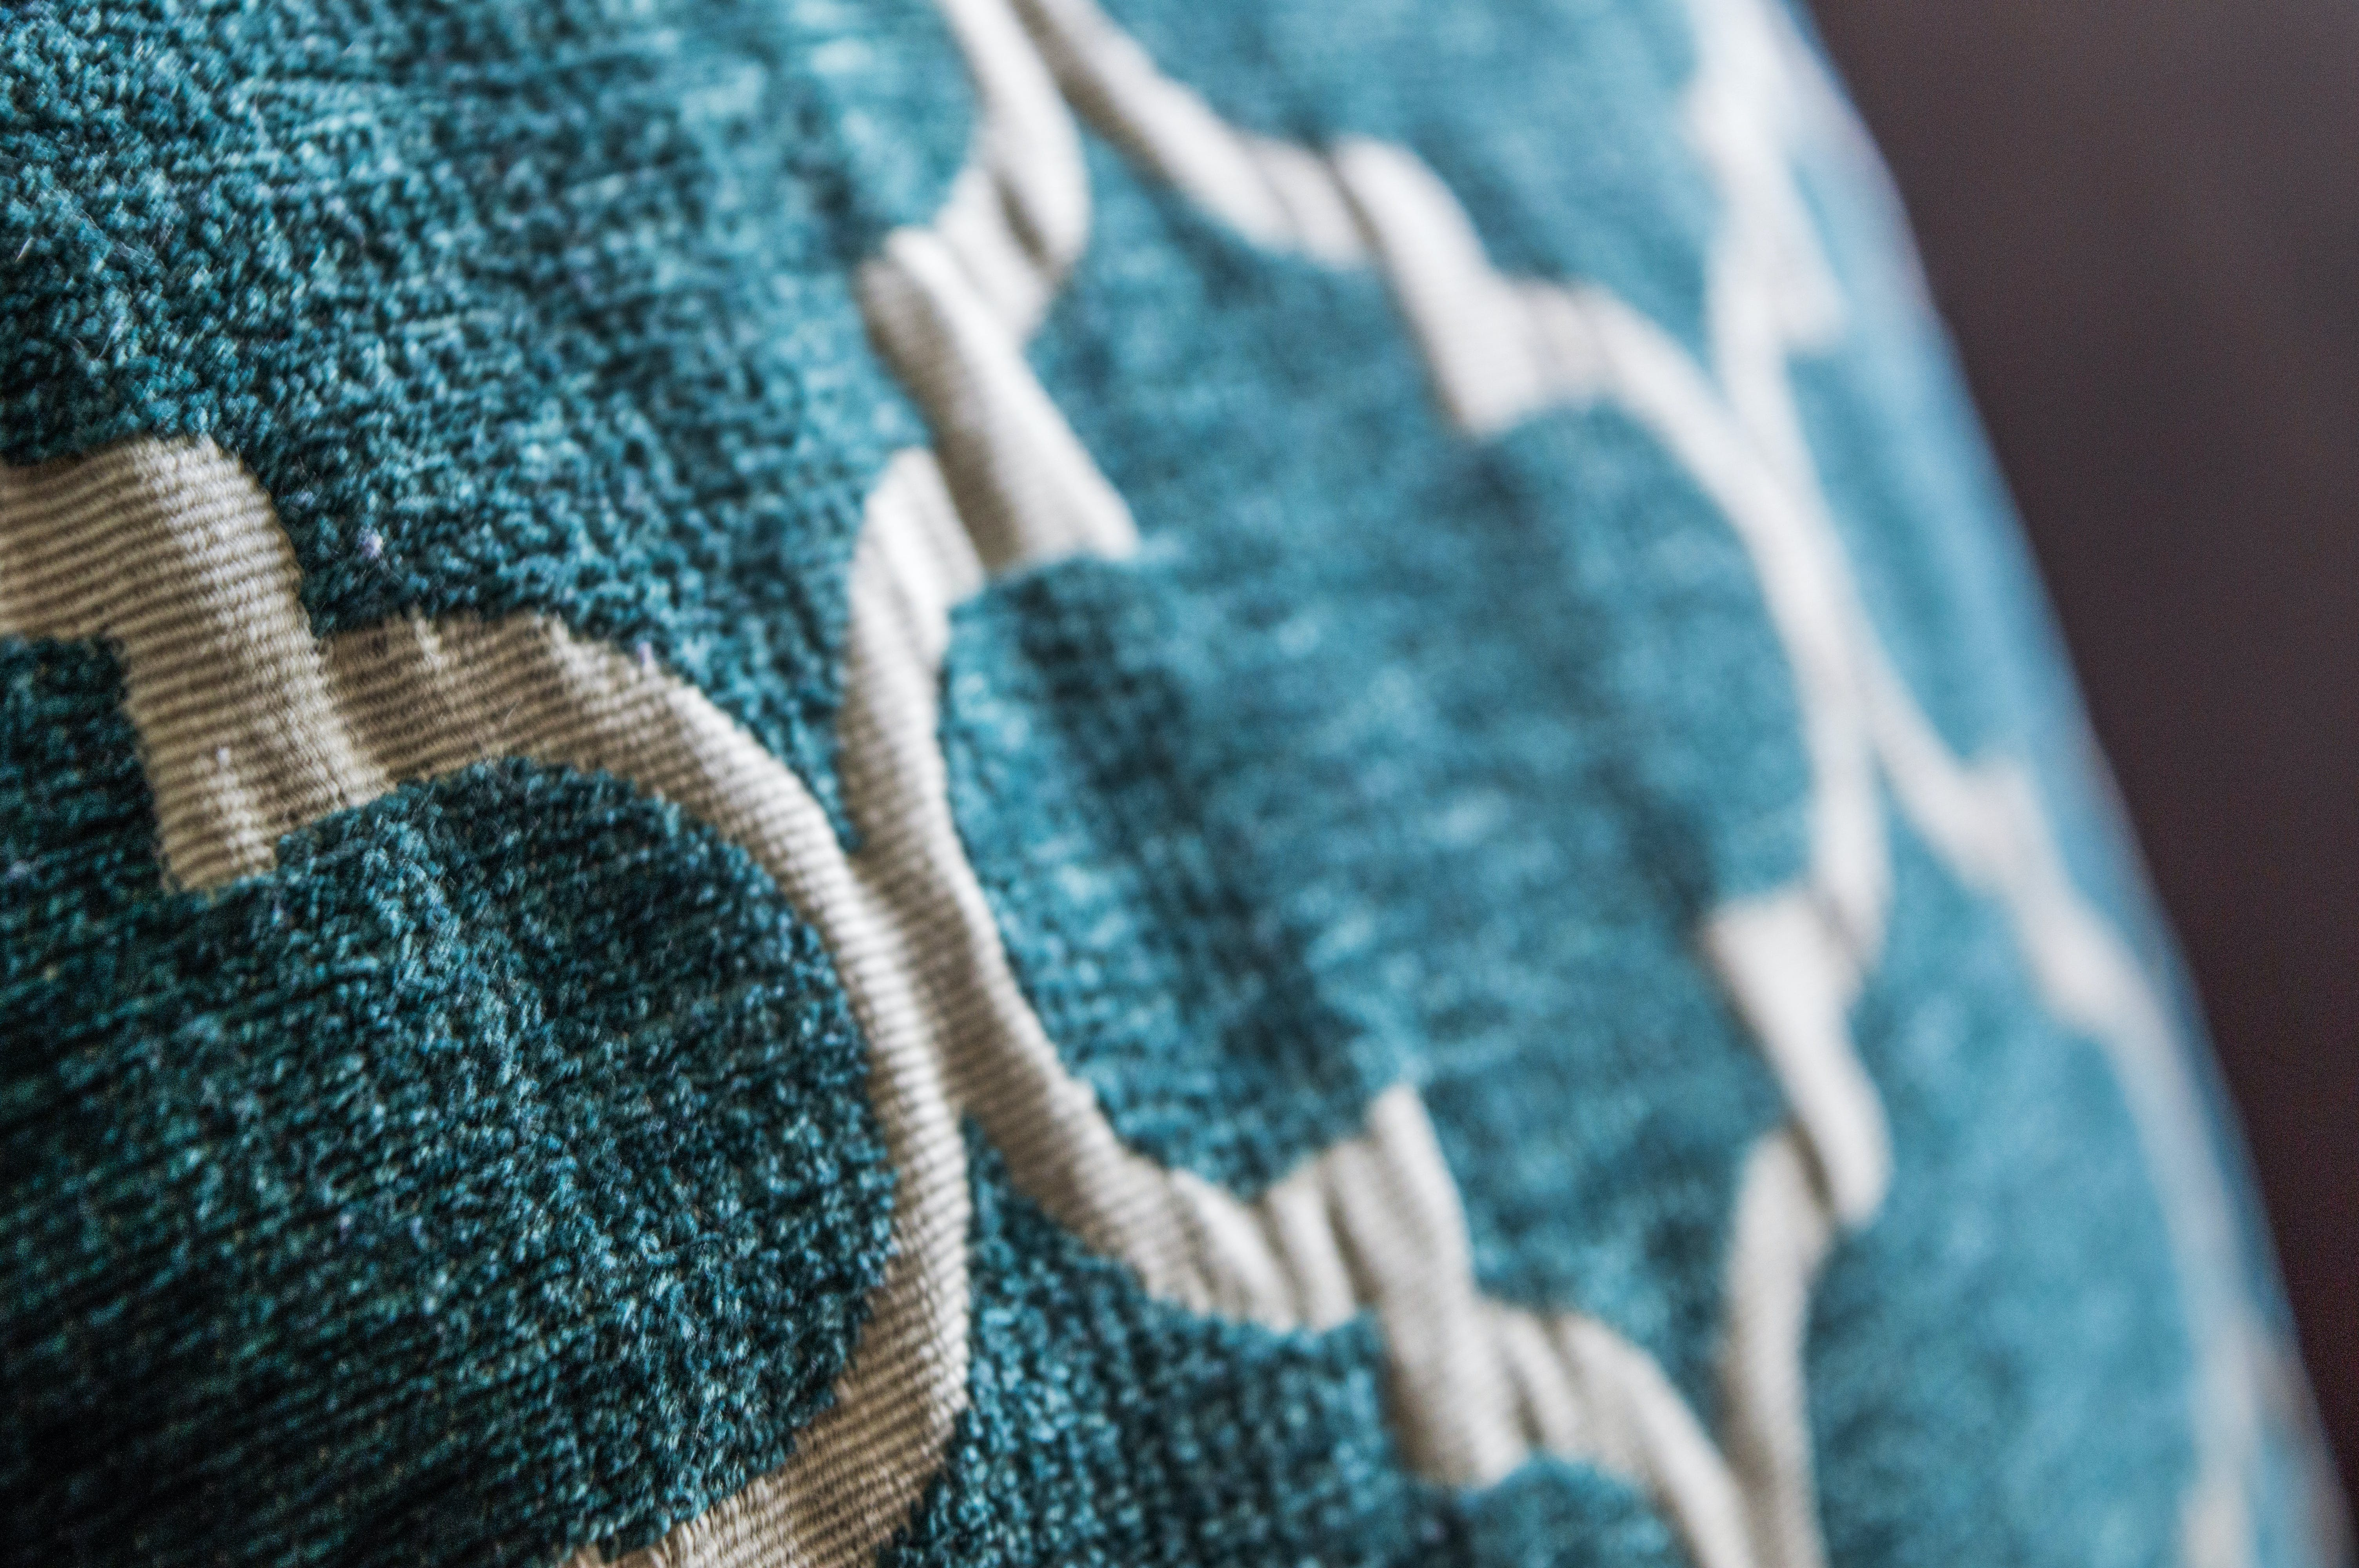 Teal and White Moroccan-style Cloth